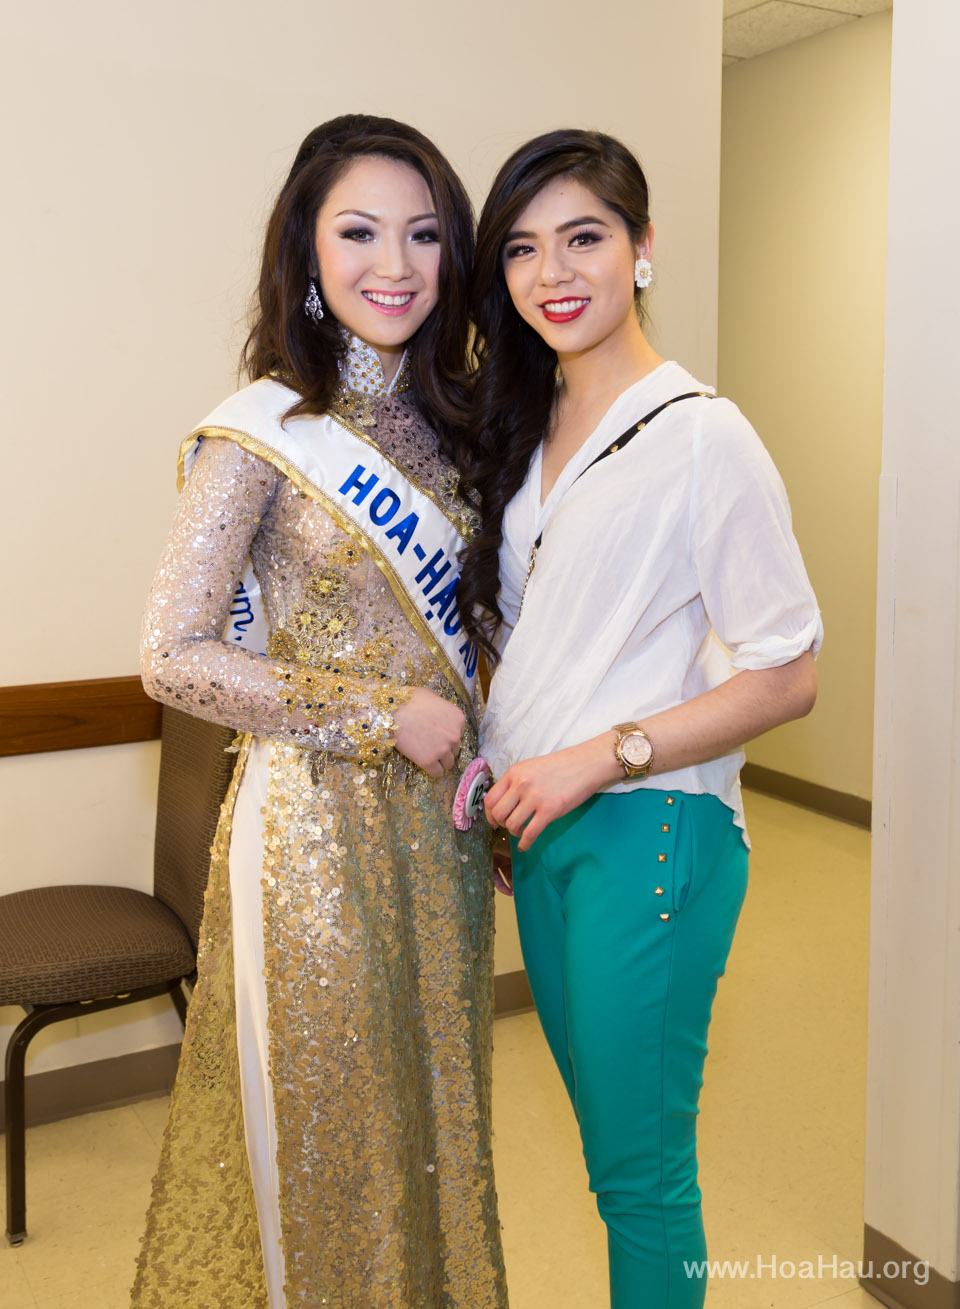 Miss Vietnam of Northern California 2014 - Hoa Hau Ao Dai Bac Cali 2014 - Behind the Scenes - Image 333